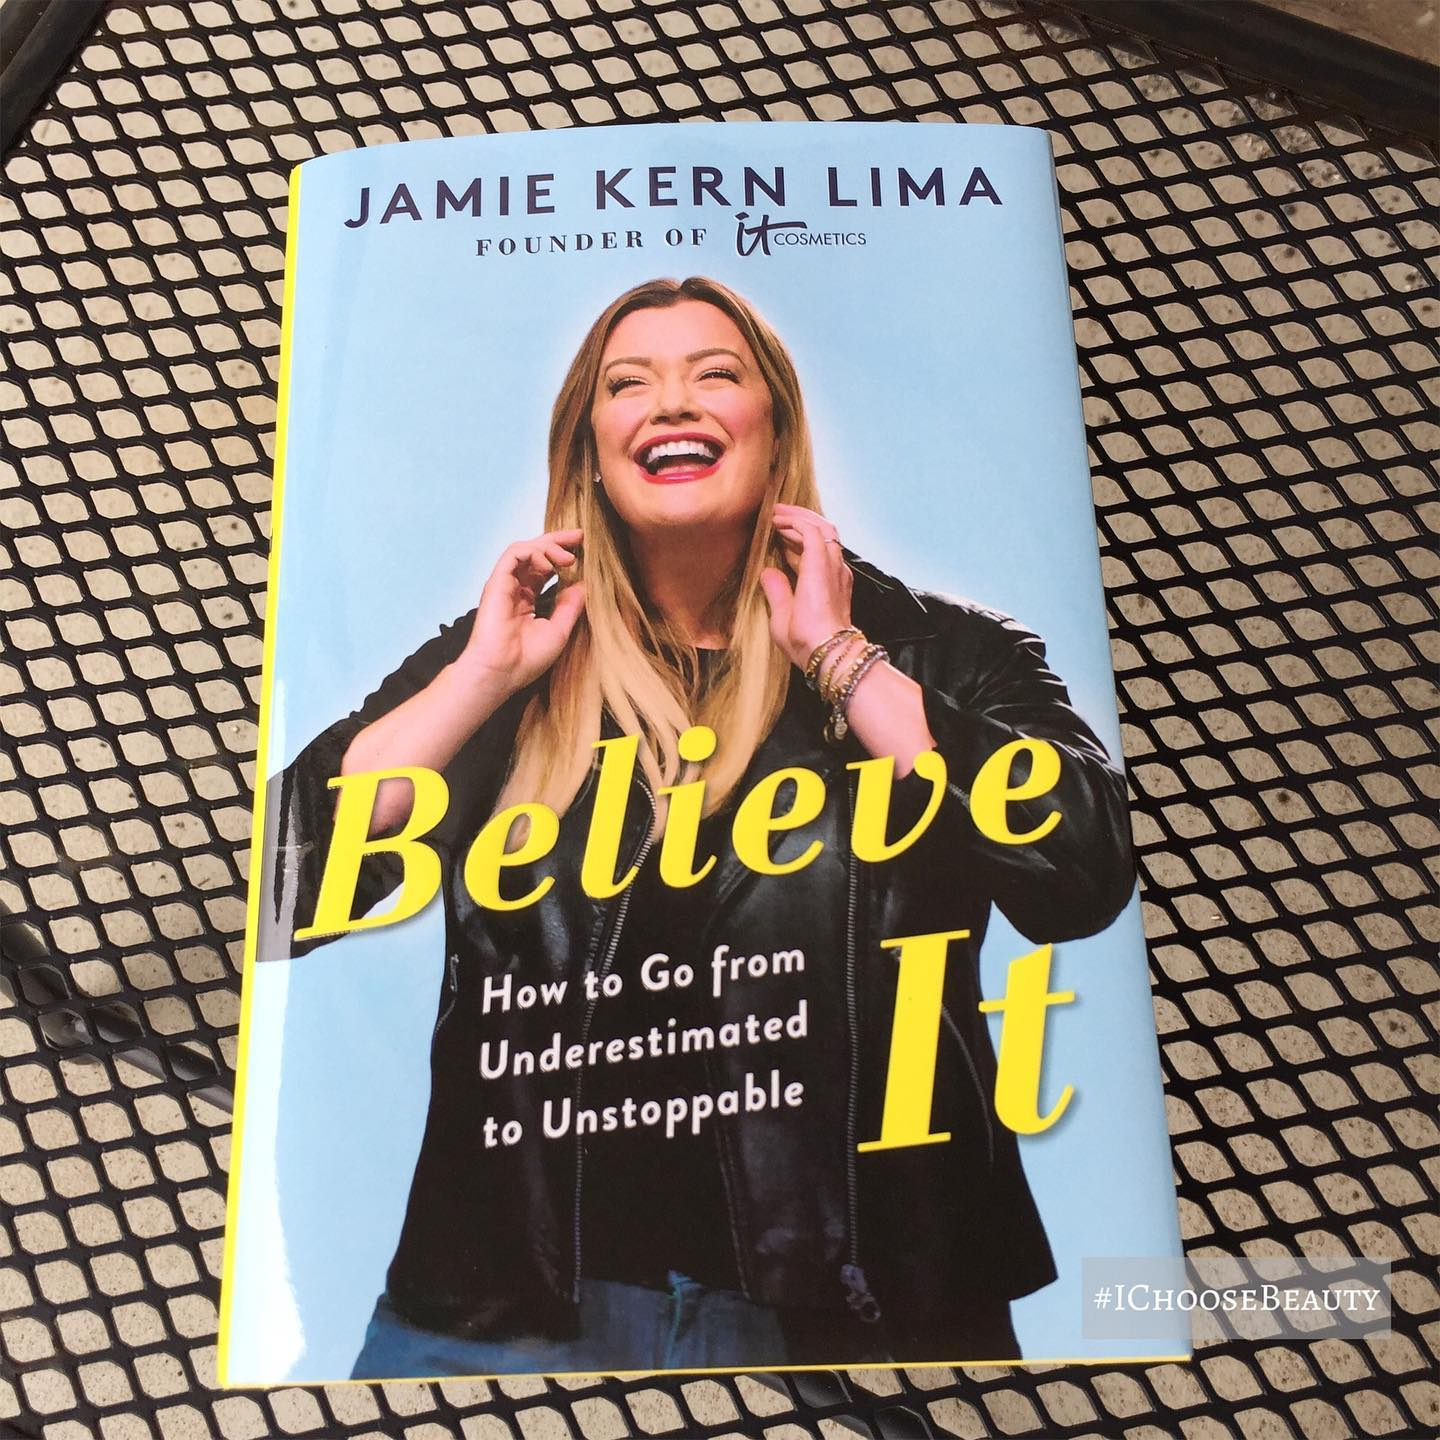 So excited to dig into this book! I saw @jamiekernlima speak (virtually) for the first time several days ago, and her energy is contagious. It can be easy to doubt yourself as an entrepreneur, and I'm looking forward to reading the story of someone who never gave up on her dreams. #ichoosebeauty Day 2667